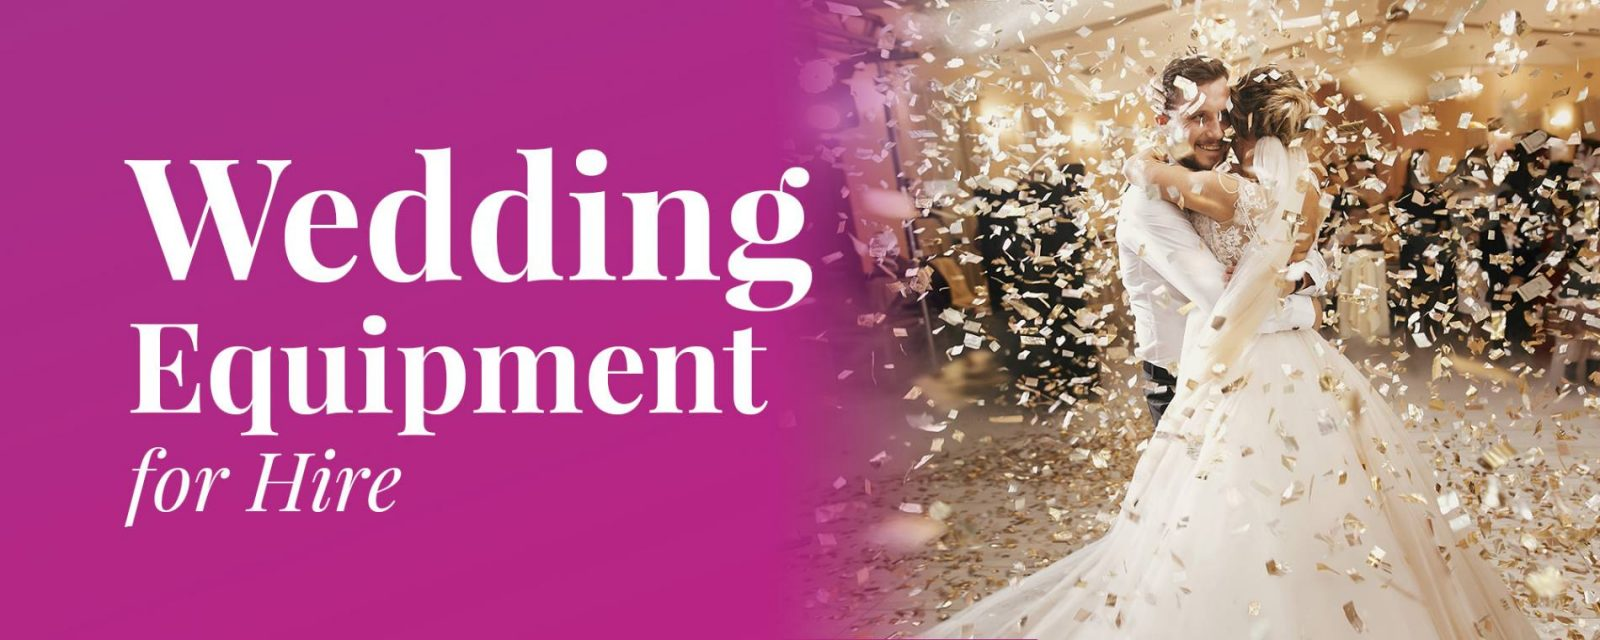 Wedding Equipment for Hire